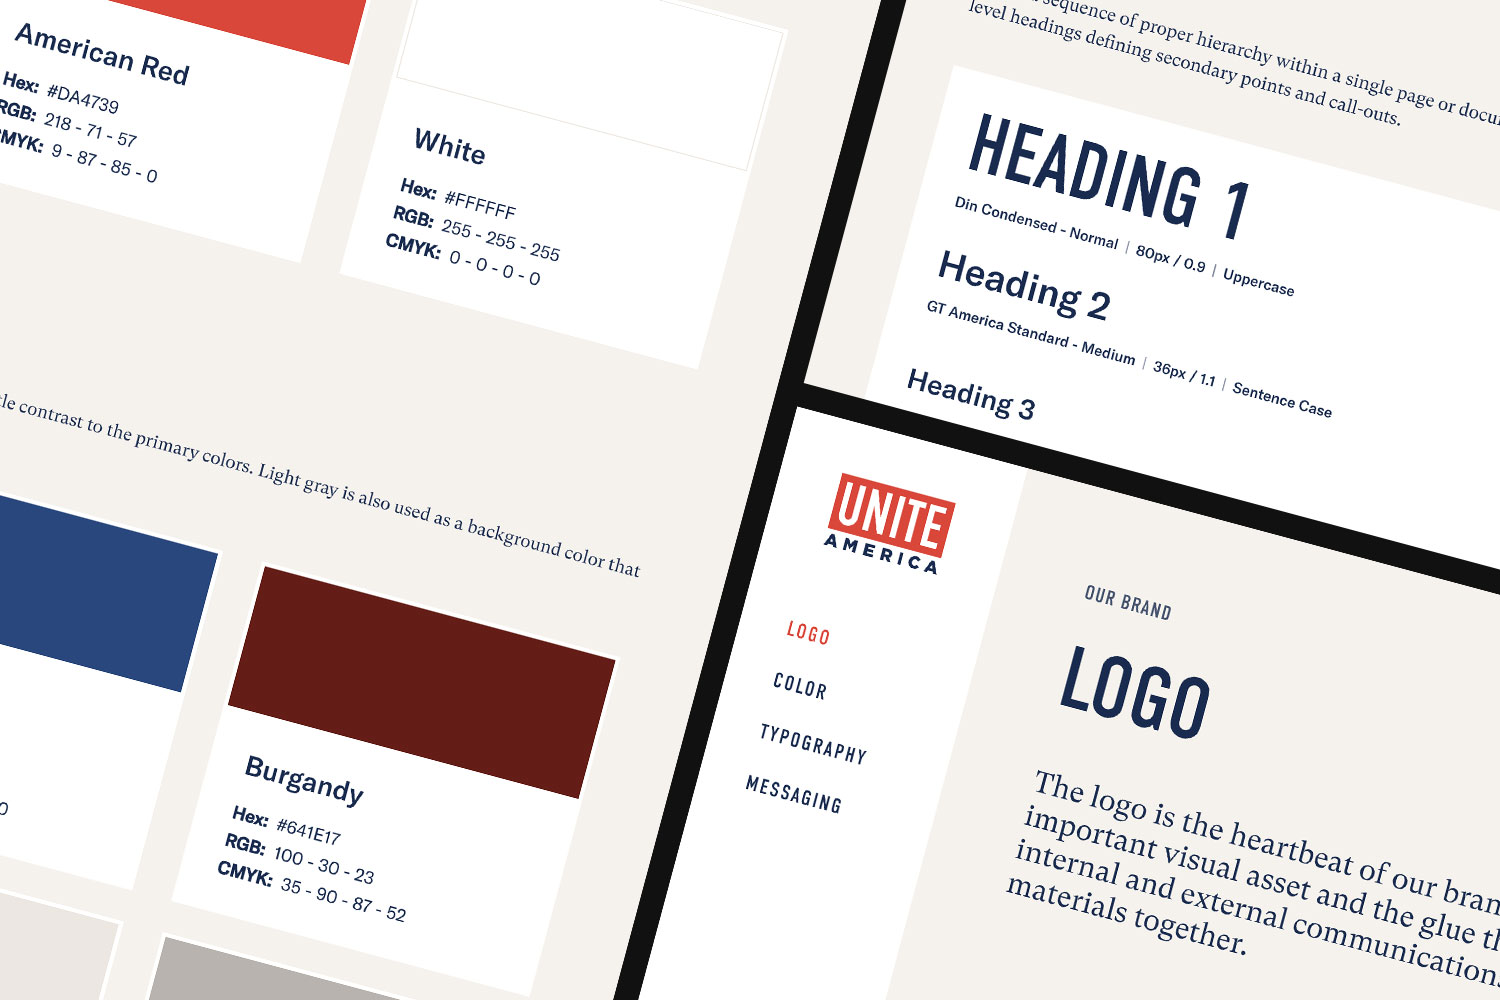 Brand guide screenshots showing color, typography and logo